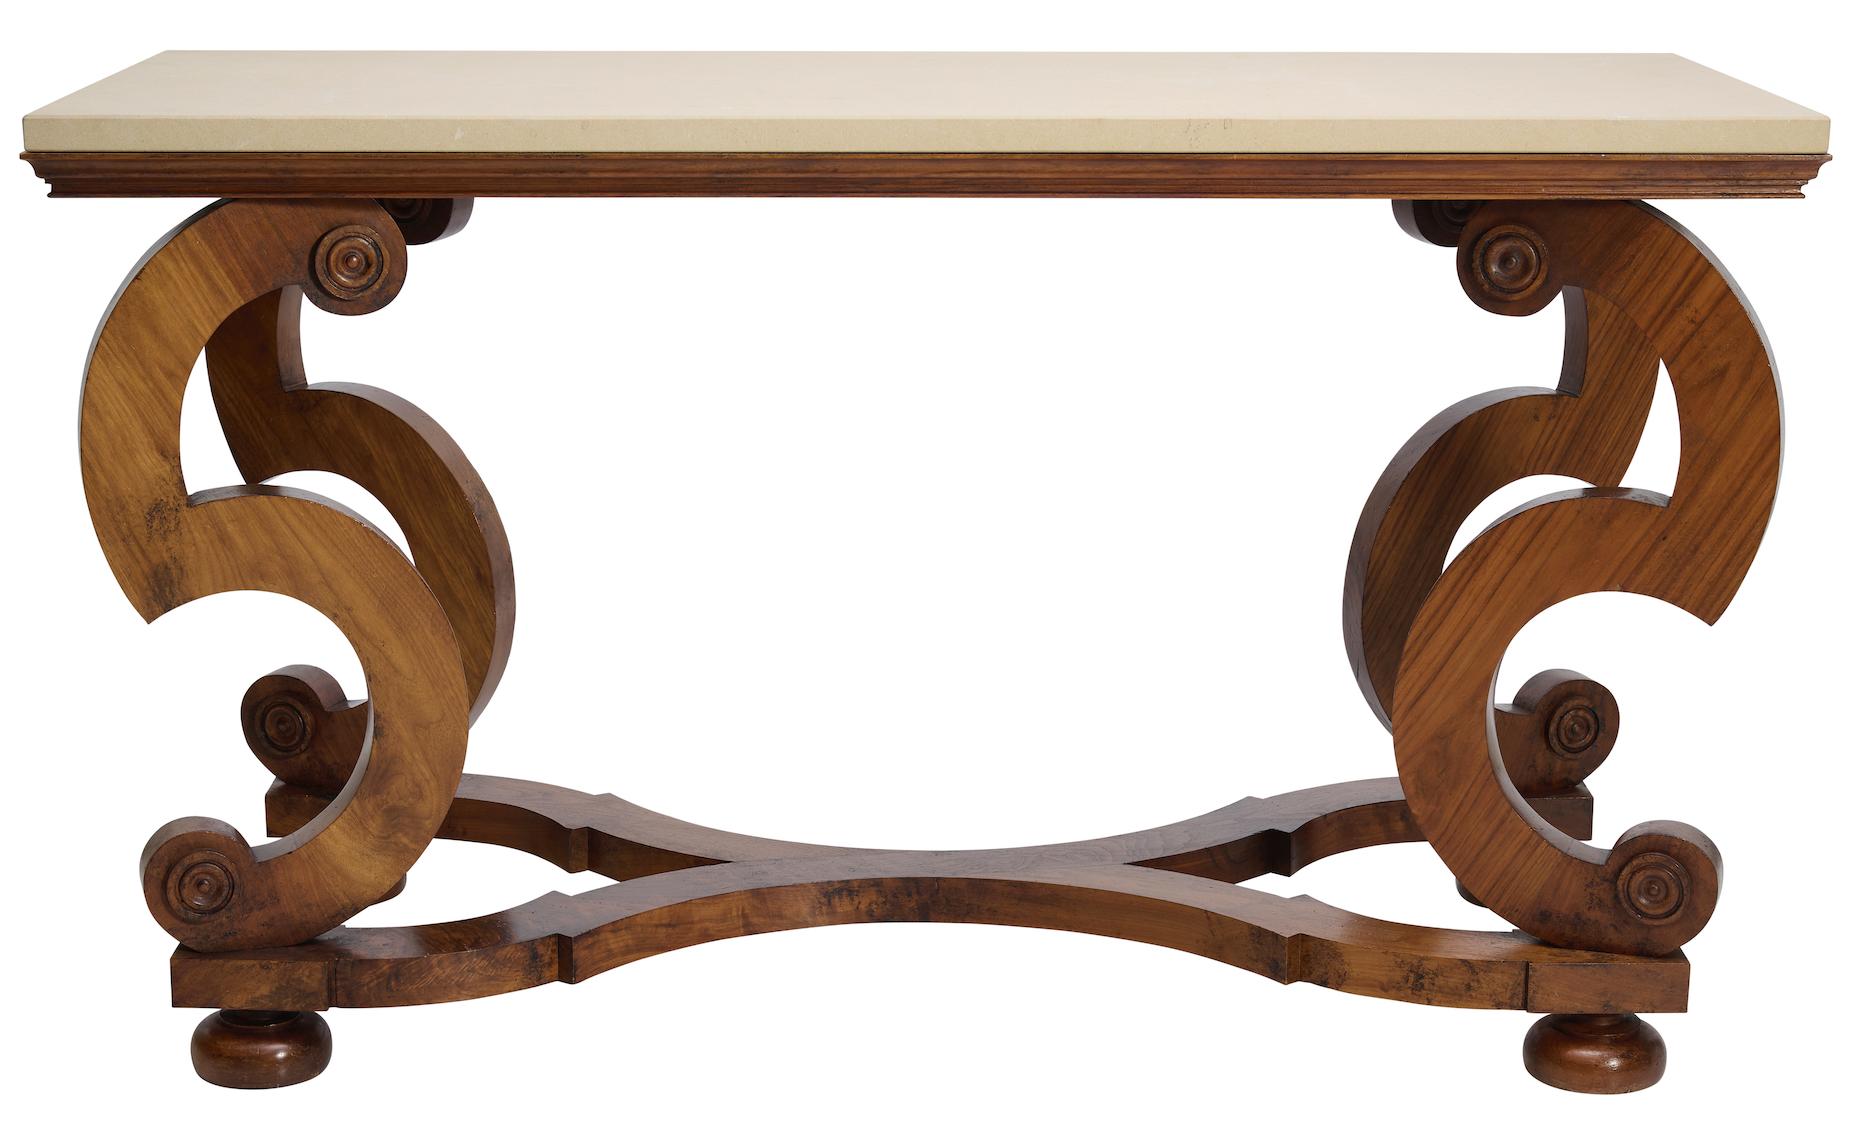 Stone Plate and Mahogany Console Table, Designed by Stuart Rattle, Made by Kim Moir Bespoke Furniture. Decorative Arts Auction Melbourne